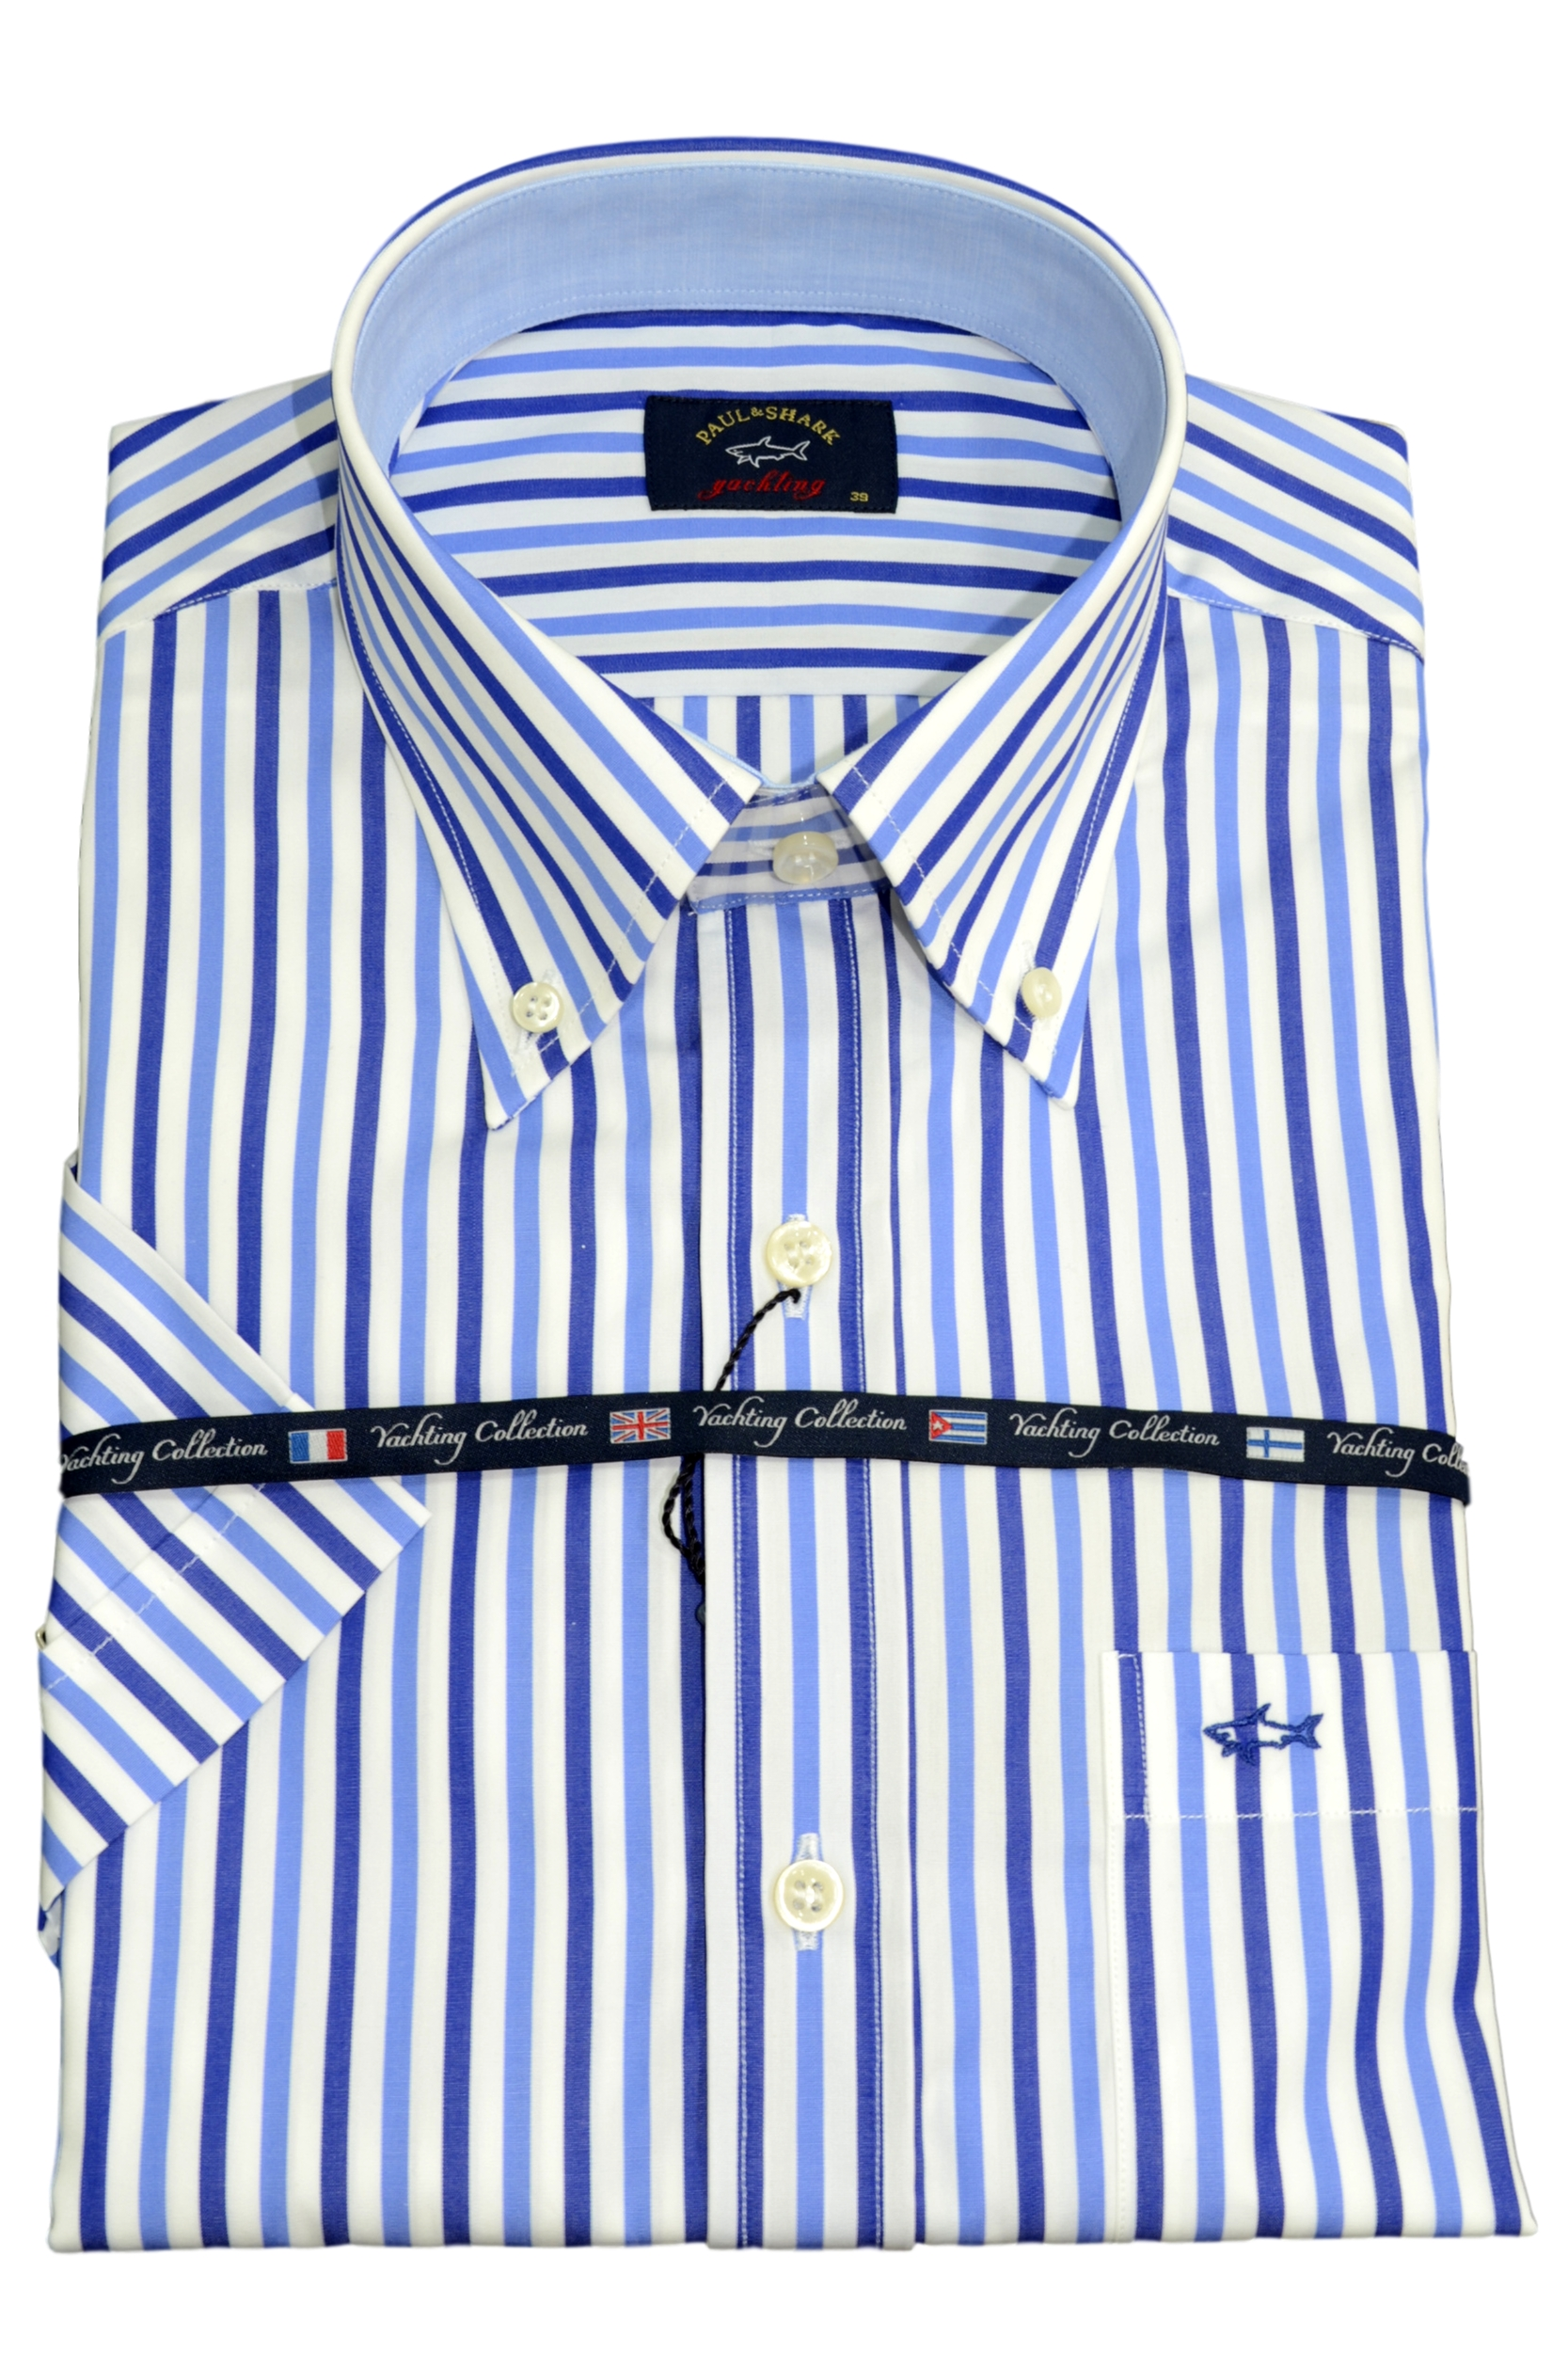 Paul Shark Camicia Uomo Mezza Manica Botton Down con taschino E19P3003